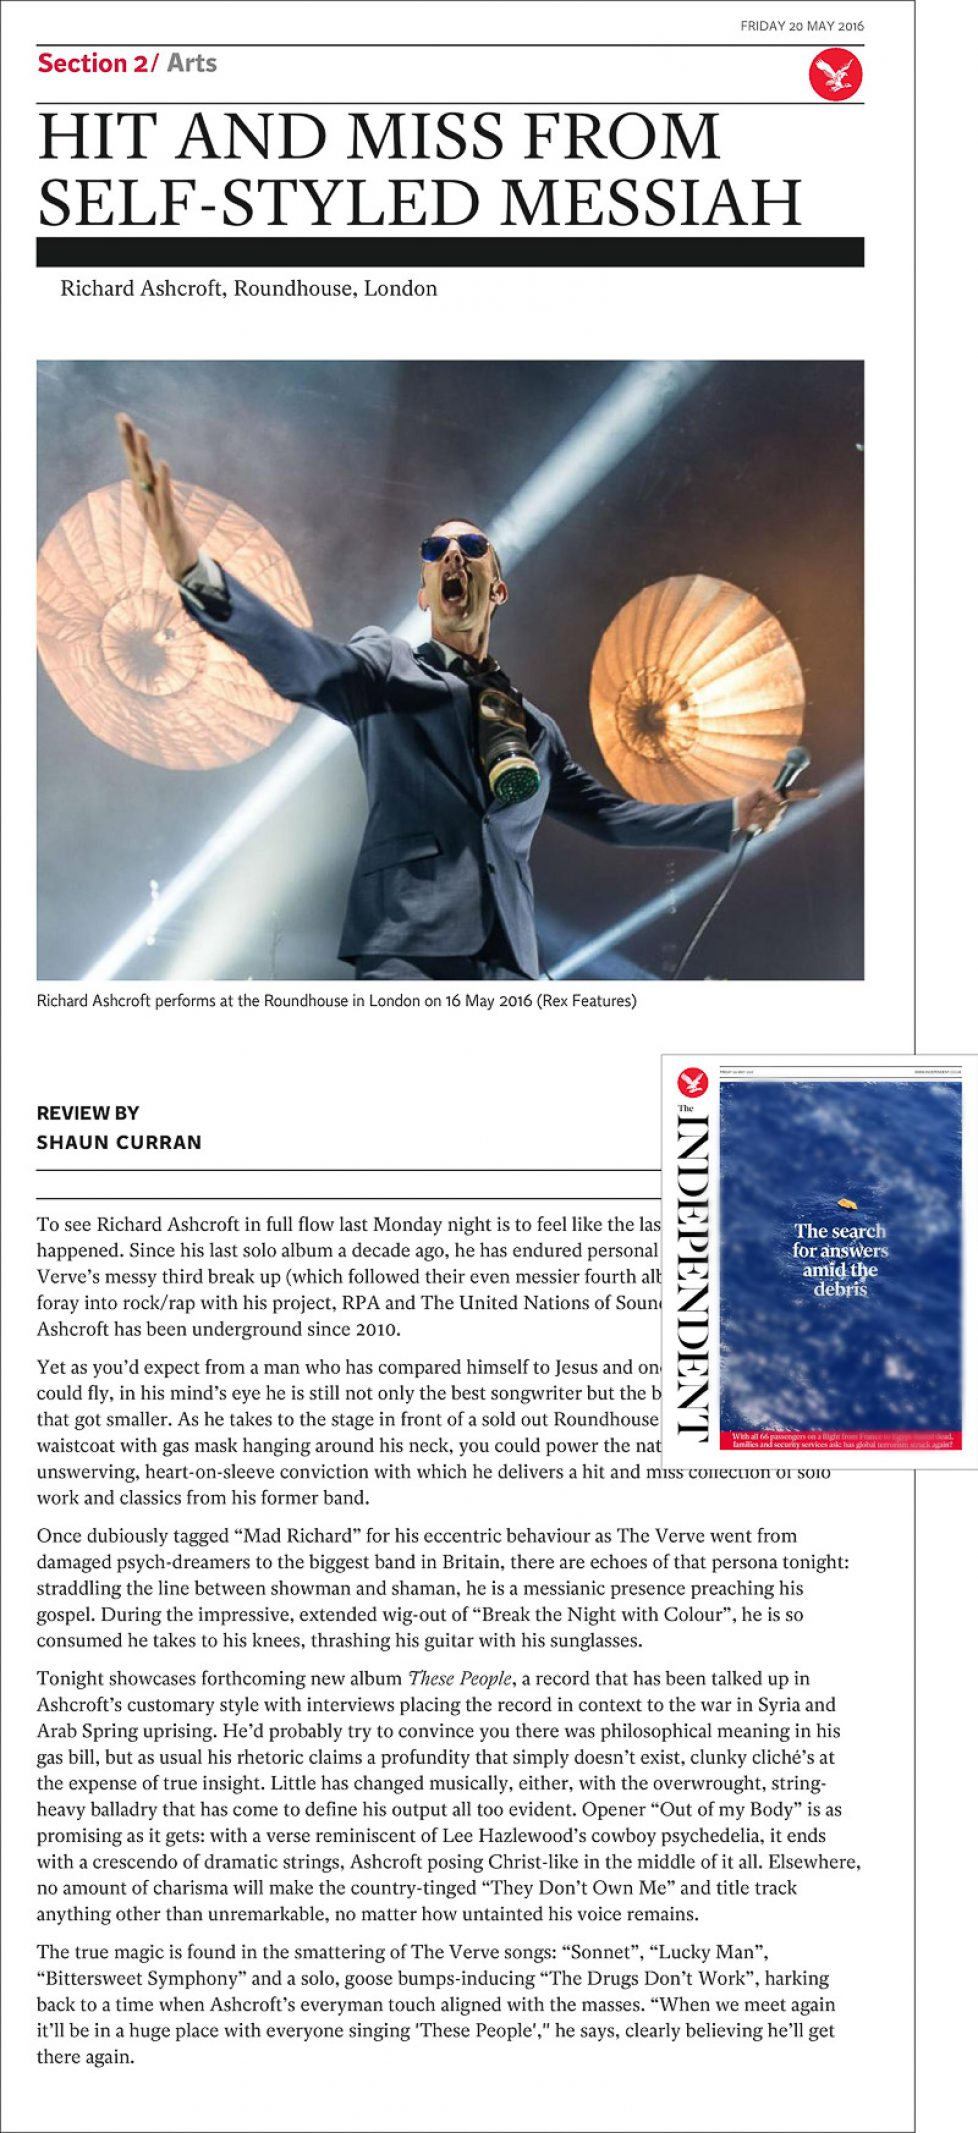 Image usage - The Independent print newspaper 20 May 2016 - Richard Ashcroft live at the Roundhouse 16 May 2016